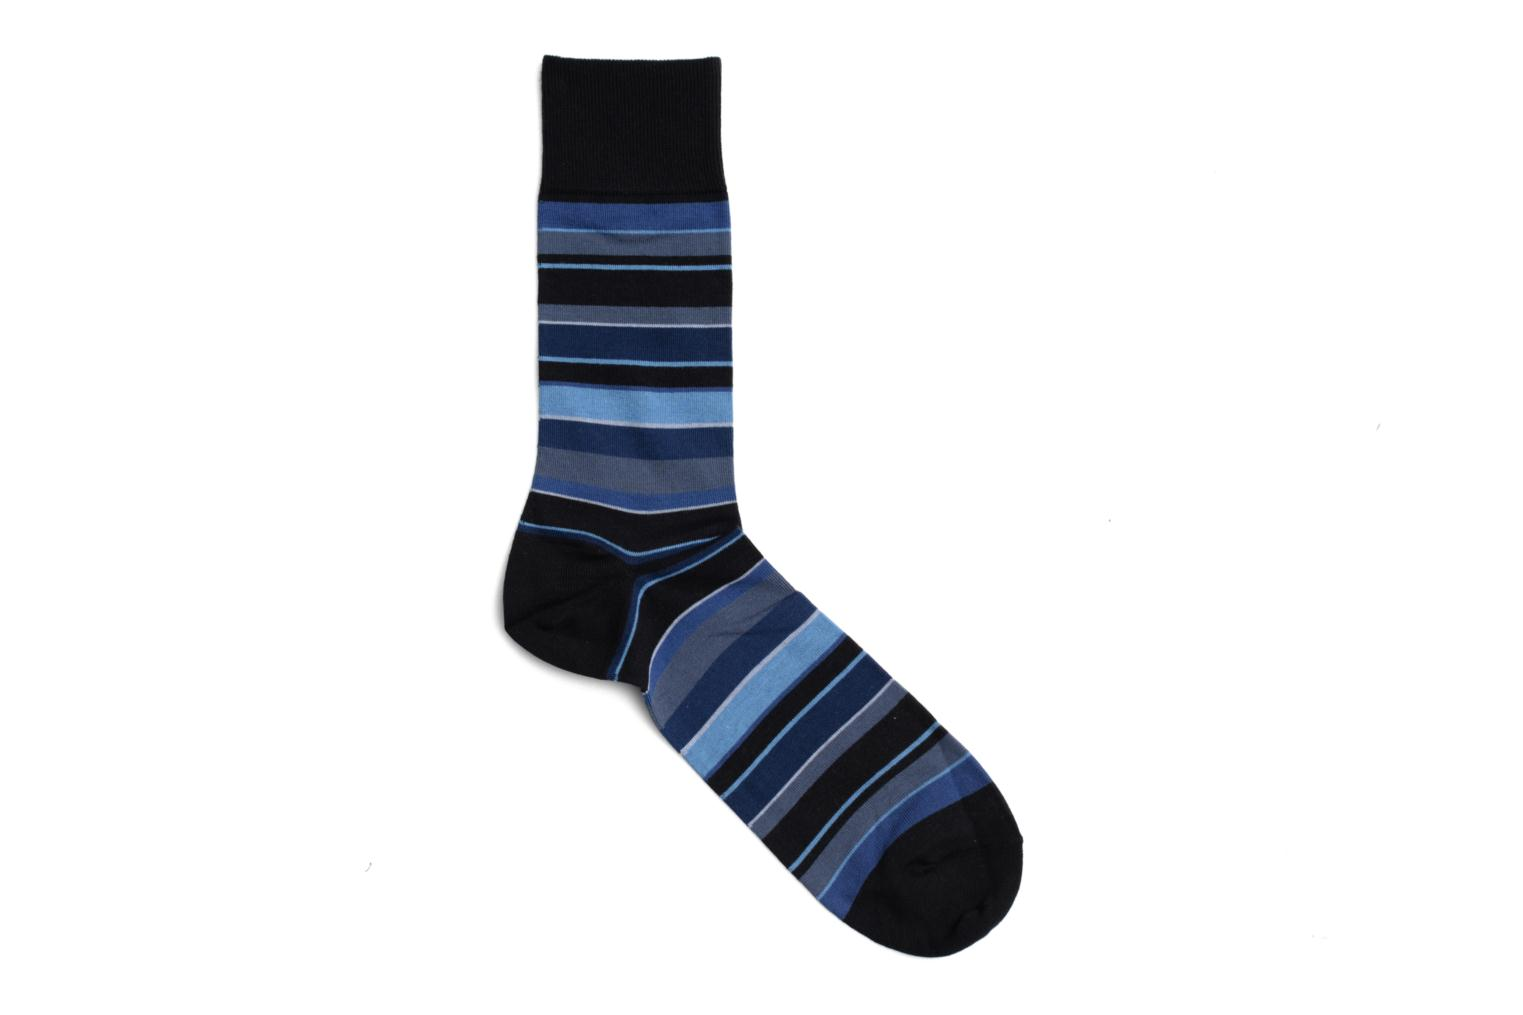 Chaussettes NEW STRIPE 6375 marine